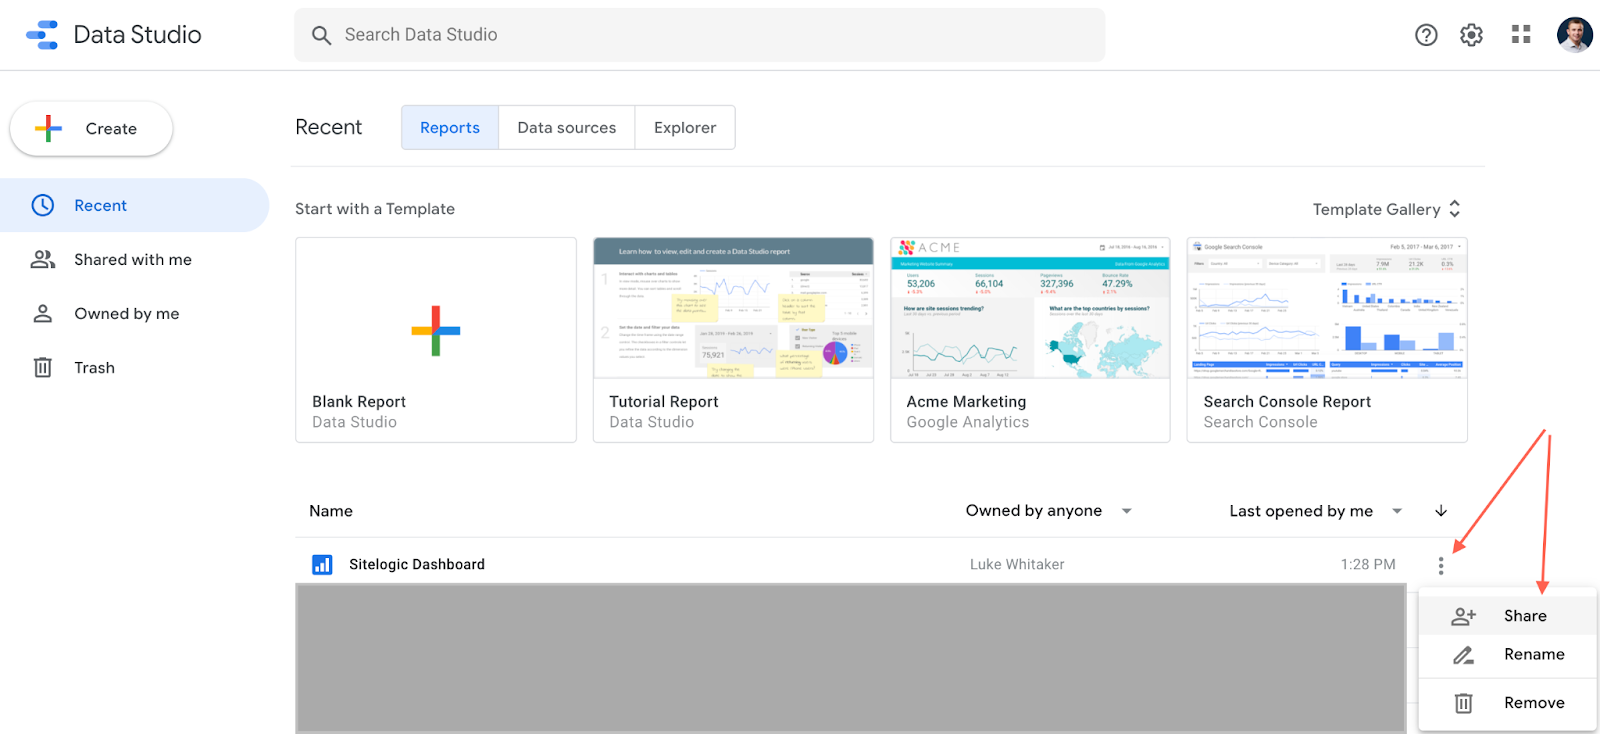 Photo showing how to share a Google Data Studio report from the main reports view.